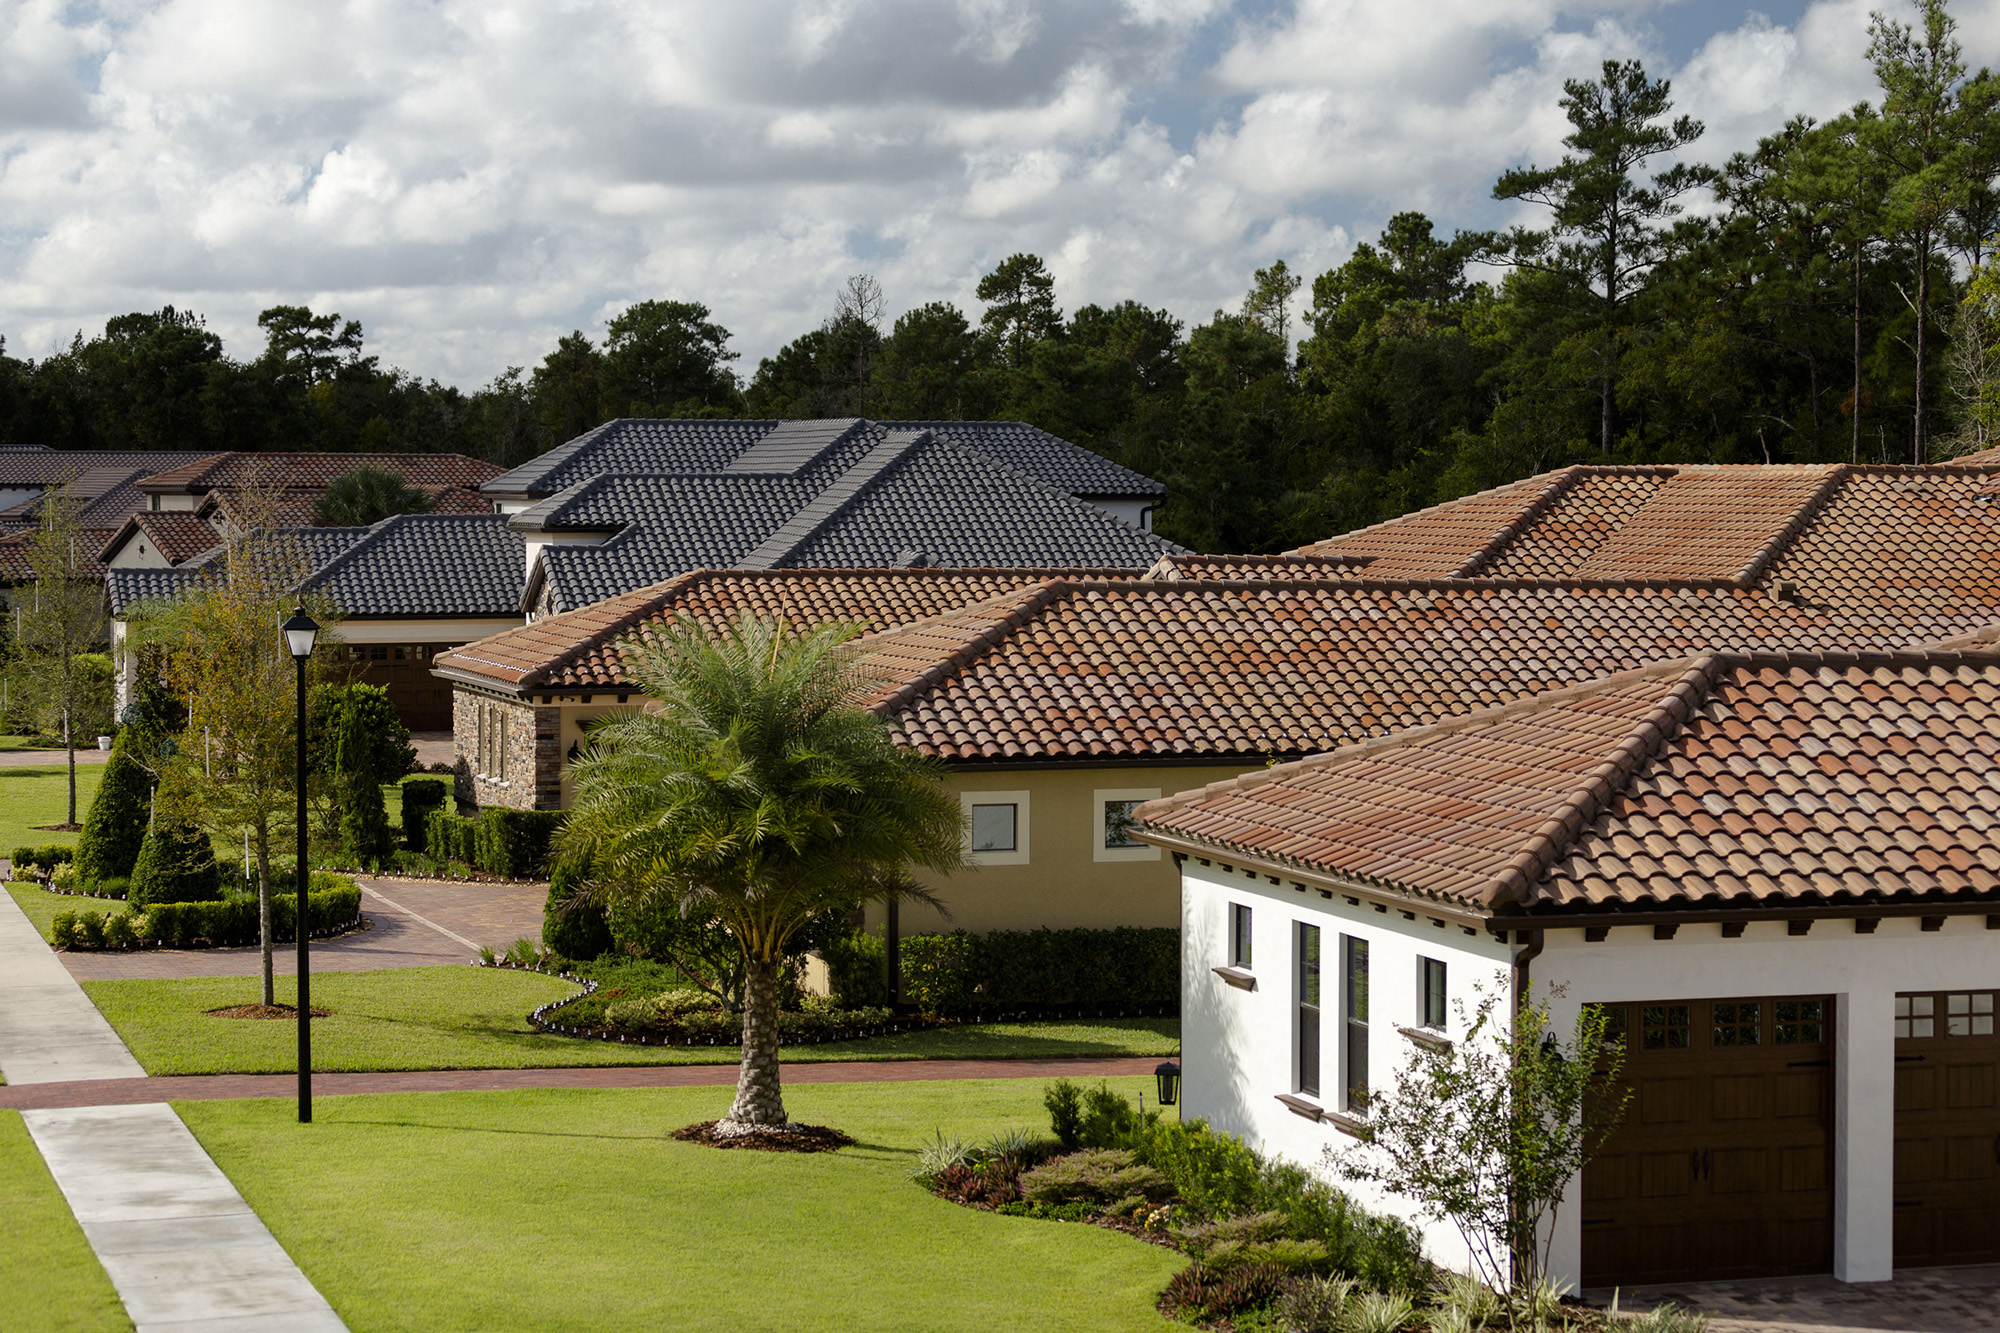 Add Value To Your Home With A New Concrete Tile Roof Eagle Roofing